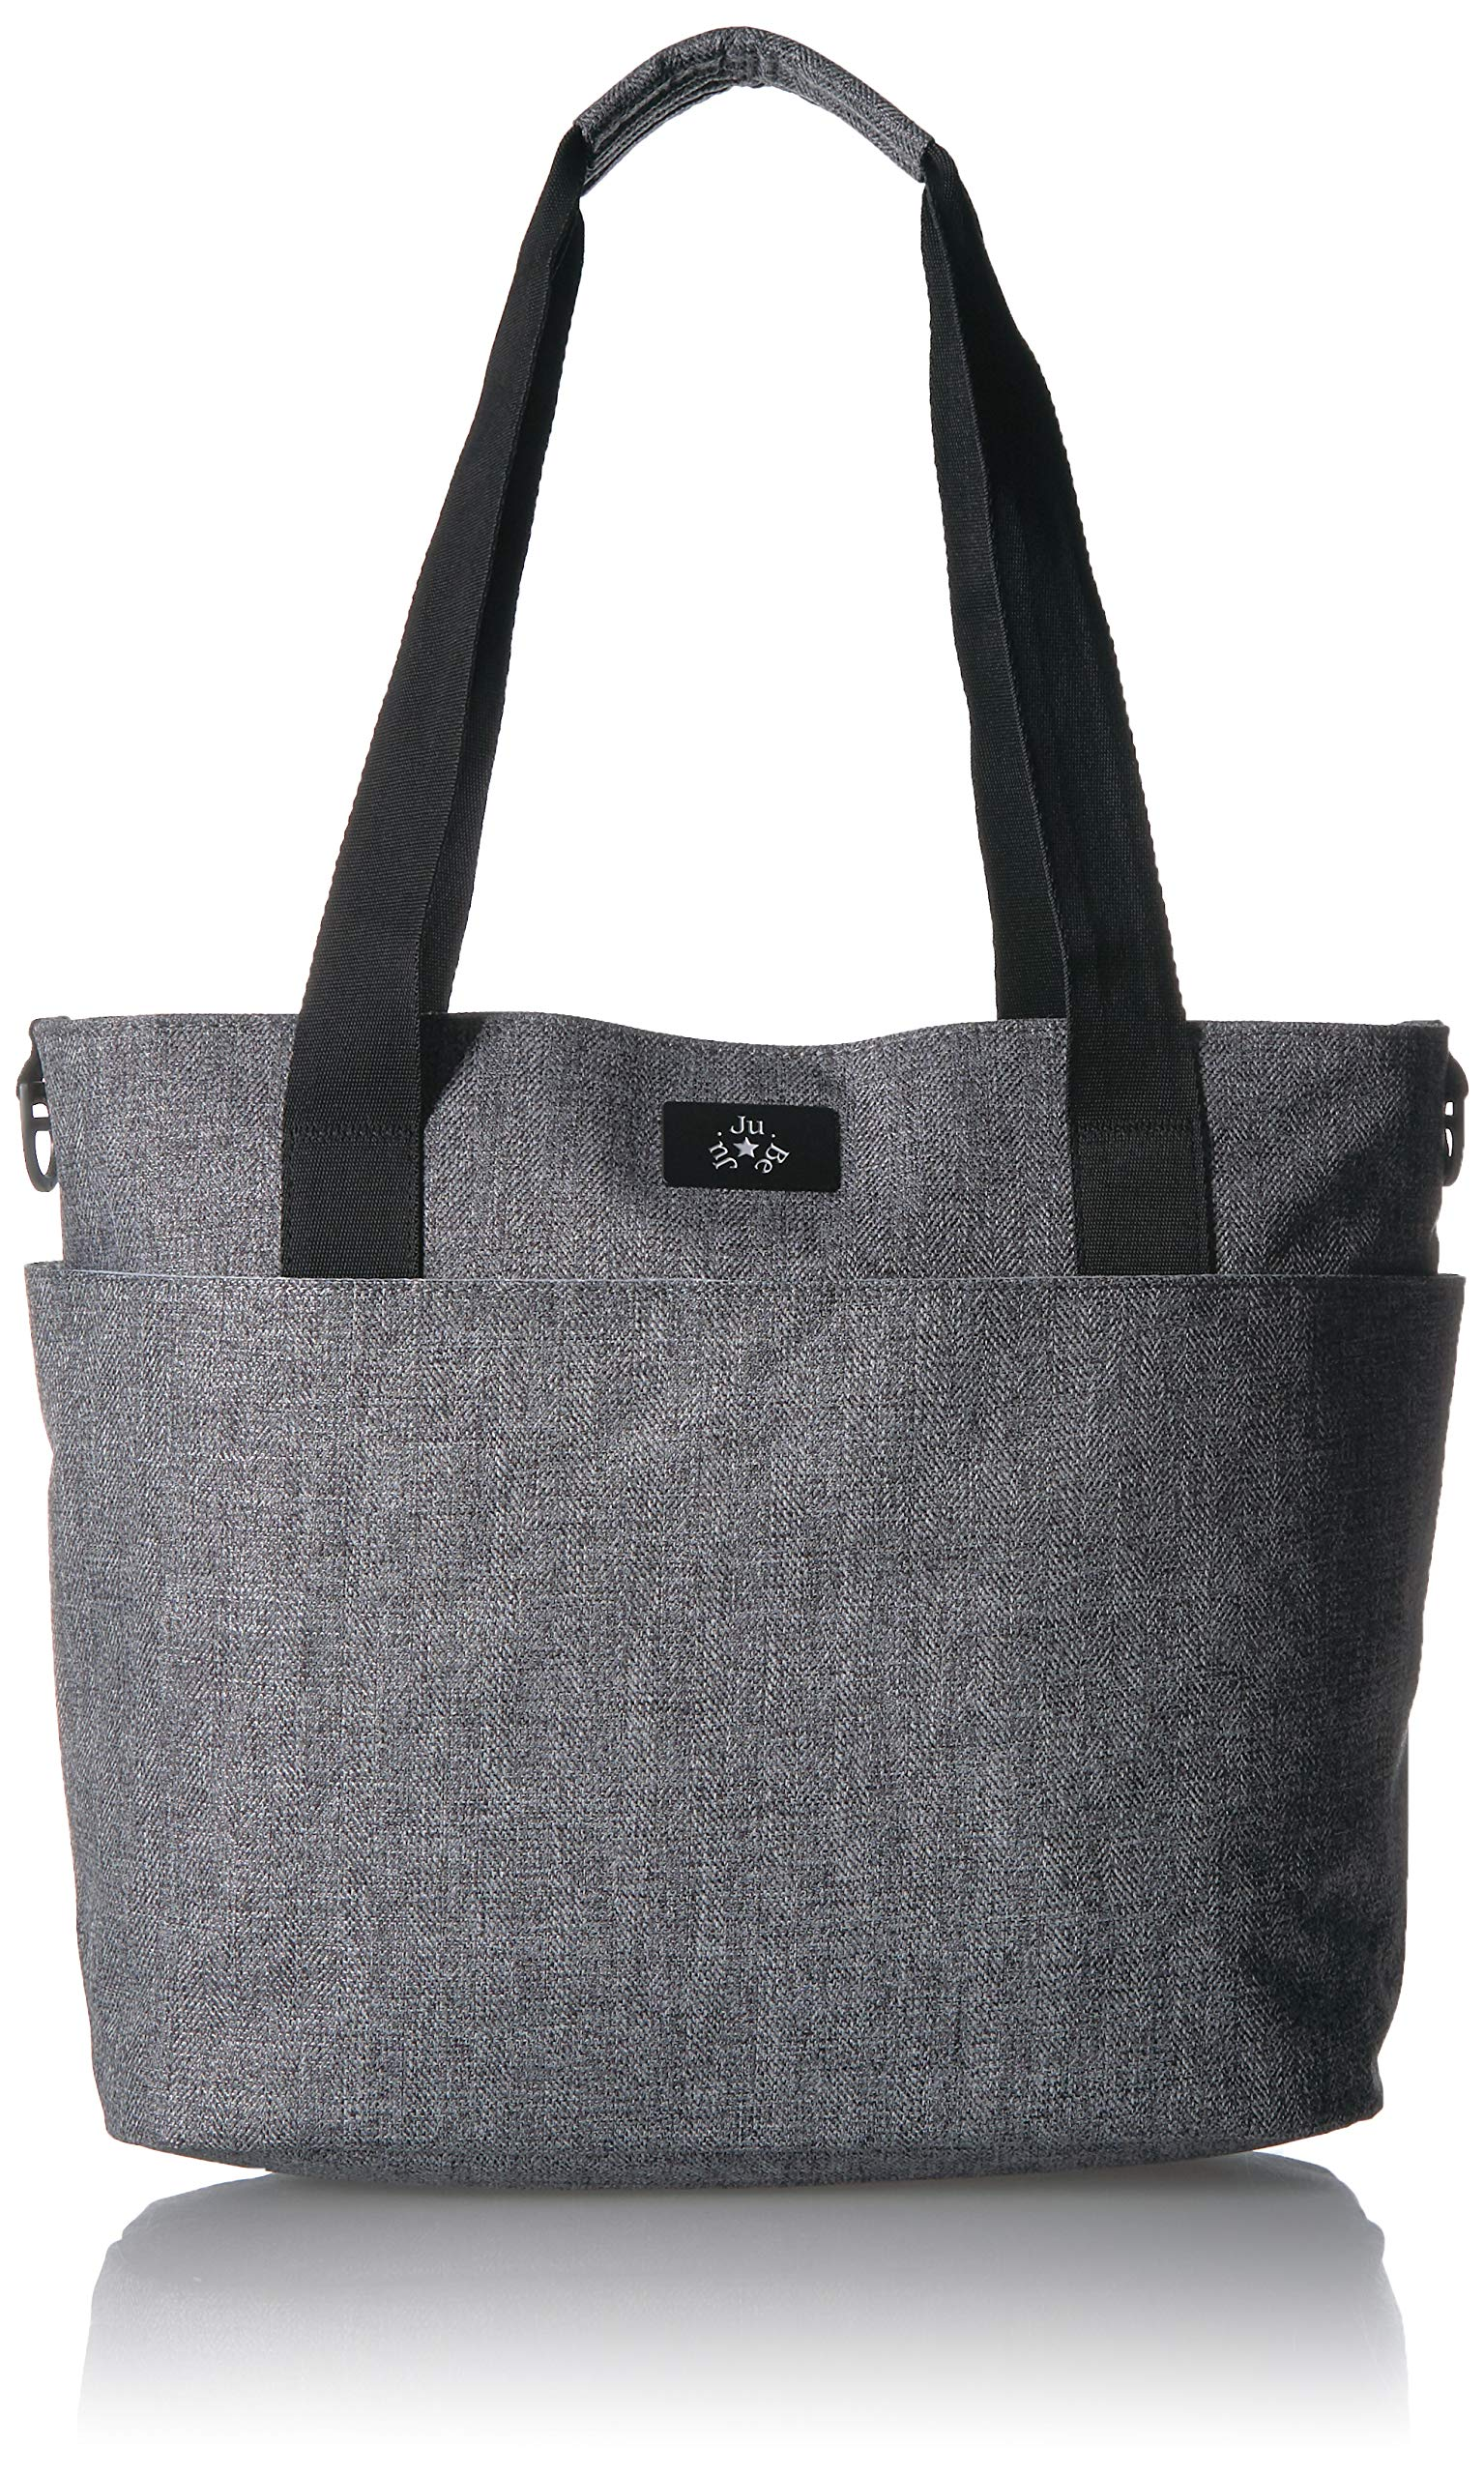 JuJuBe Encore Travel Diaper Tote Bag | Classic Collection | Lightweight, Everyday Diaper Bag for Travel | Graphite, One Size